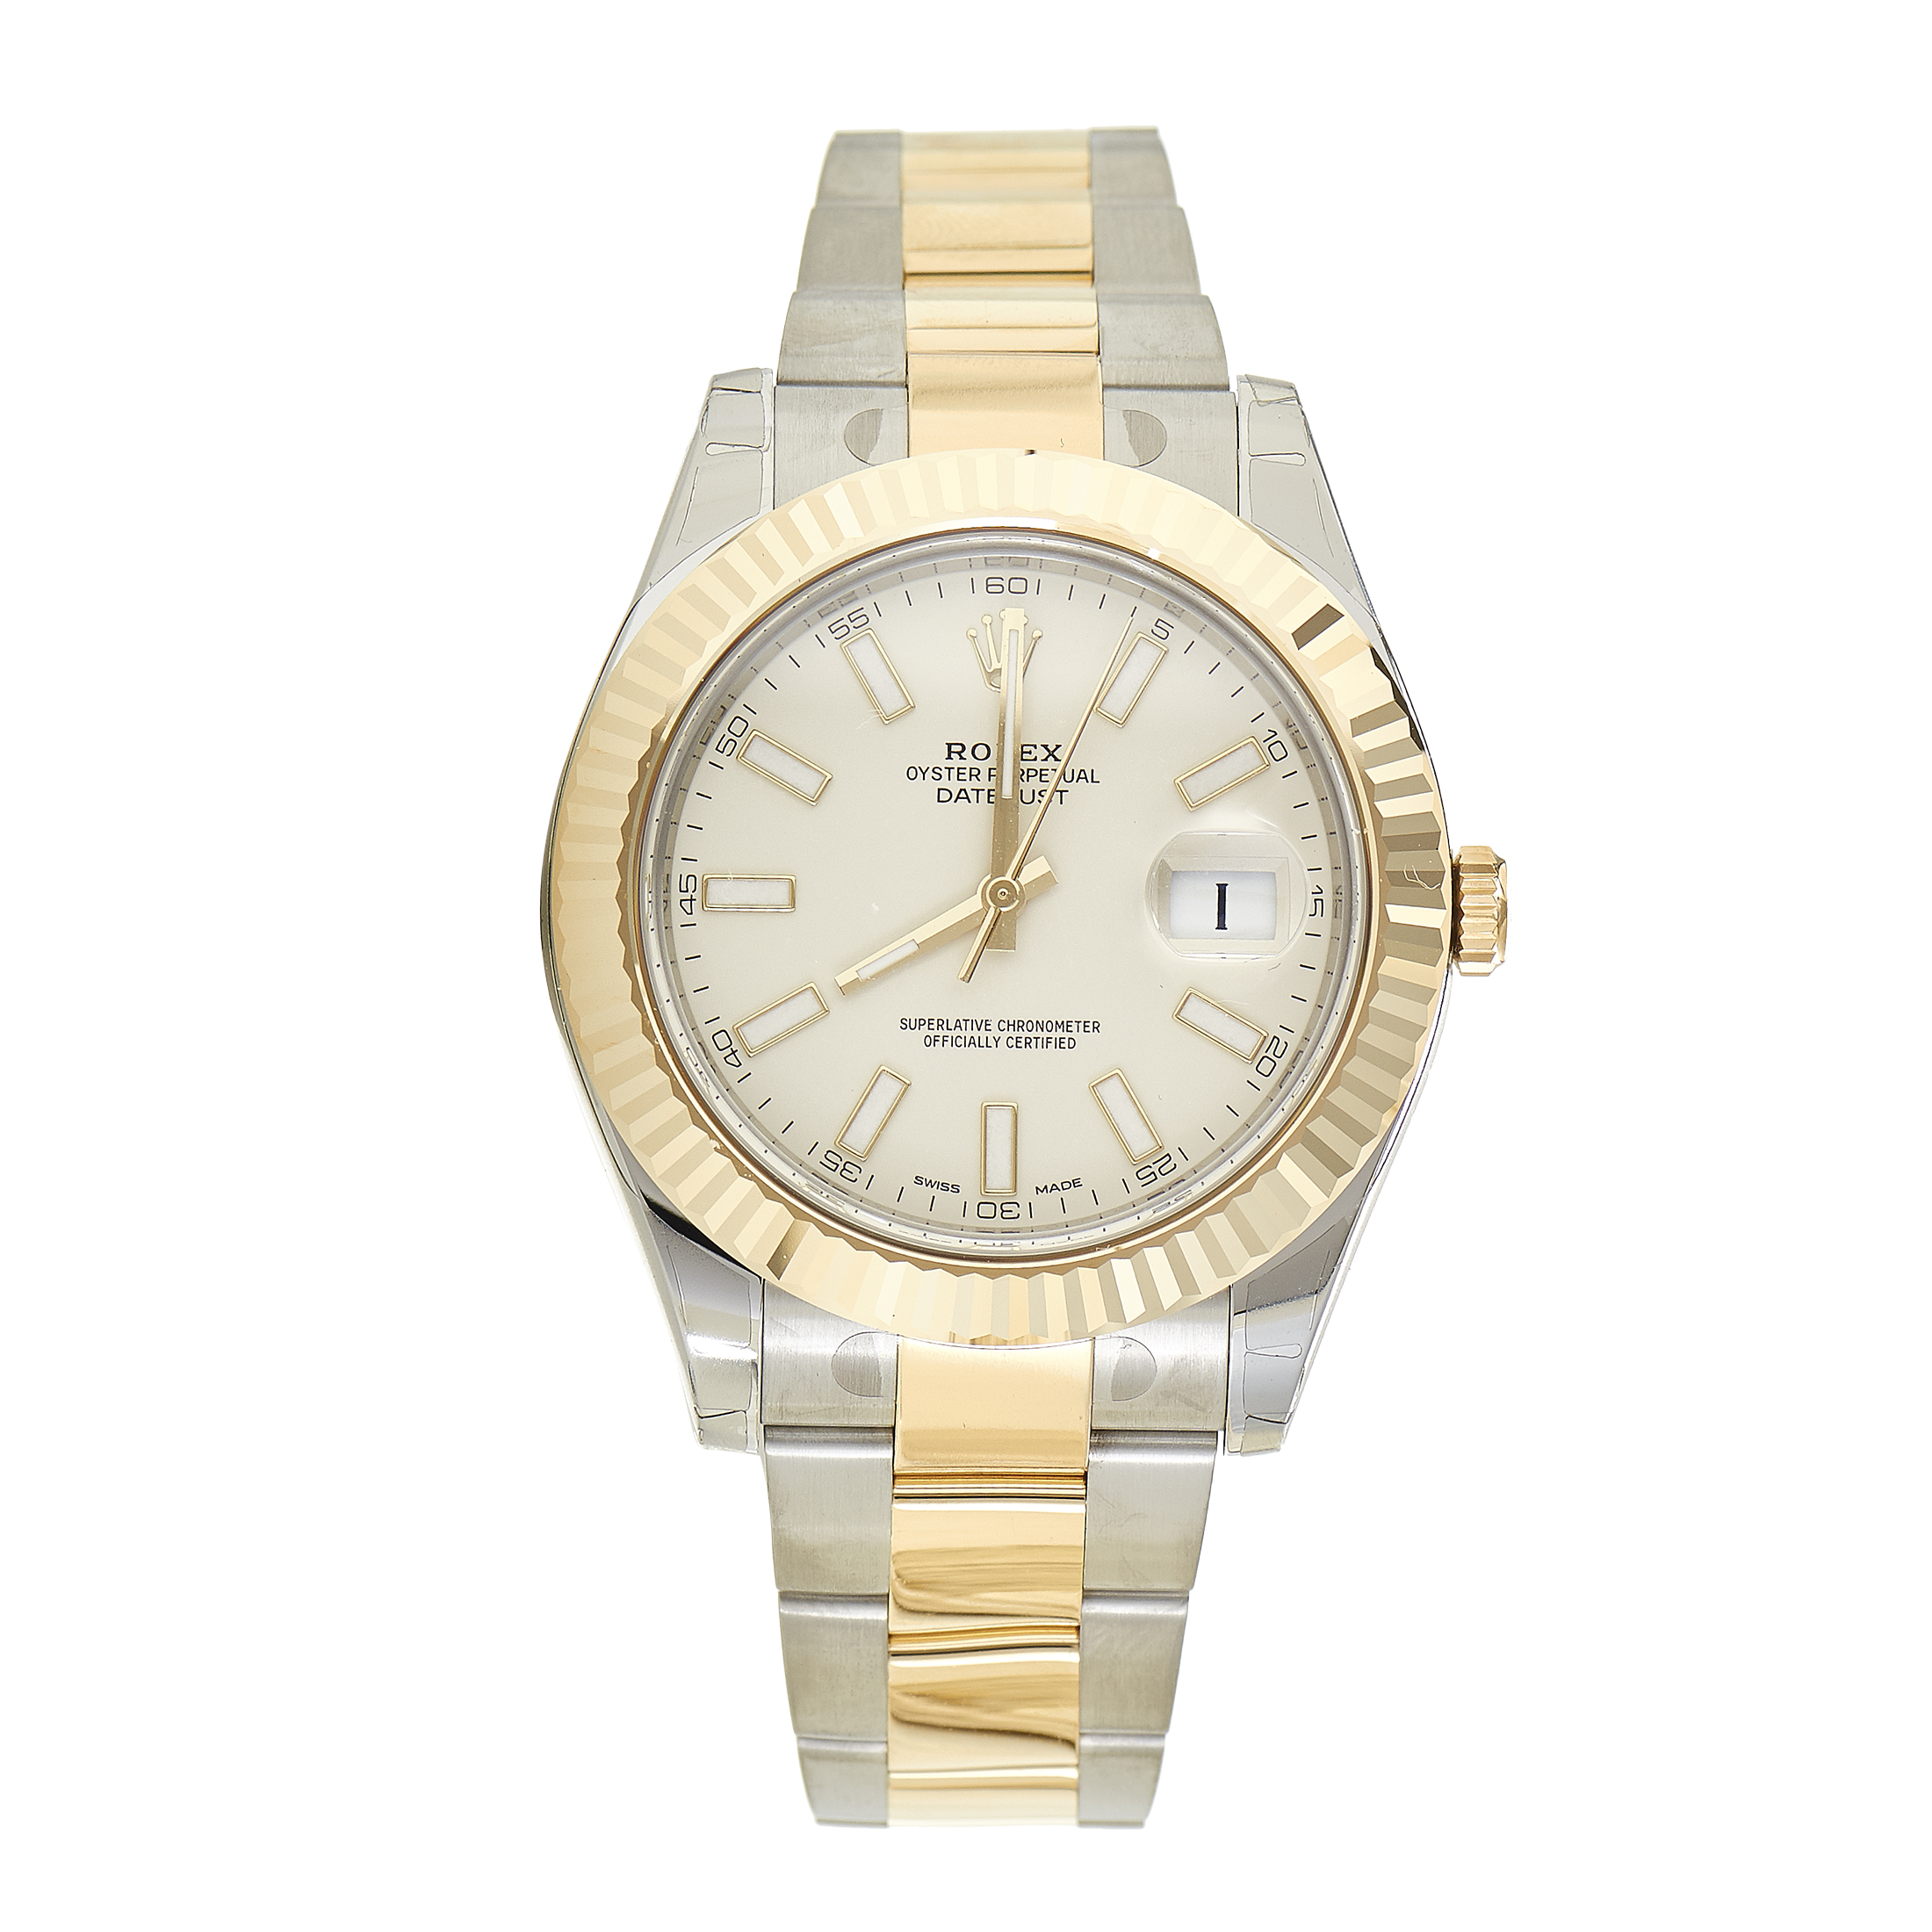 Oyster Perpetual Datejust II Men's Automatic Watch 116333 wio